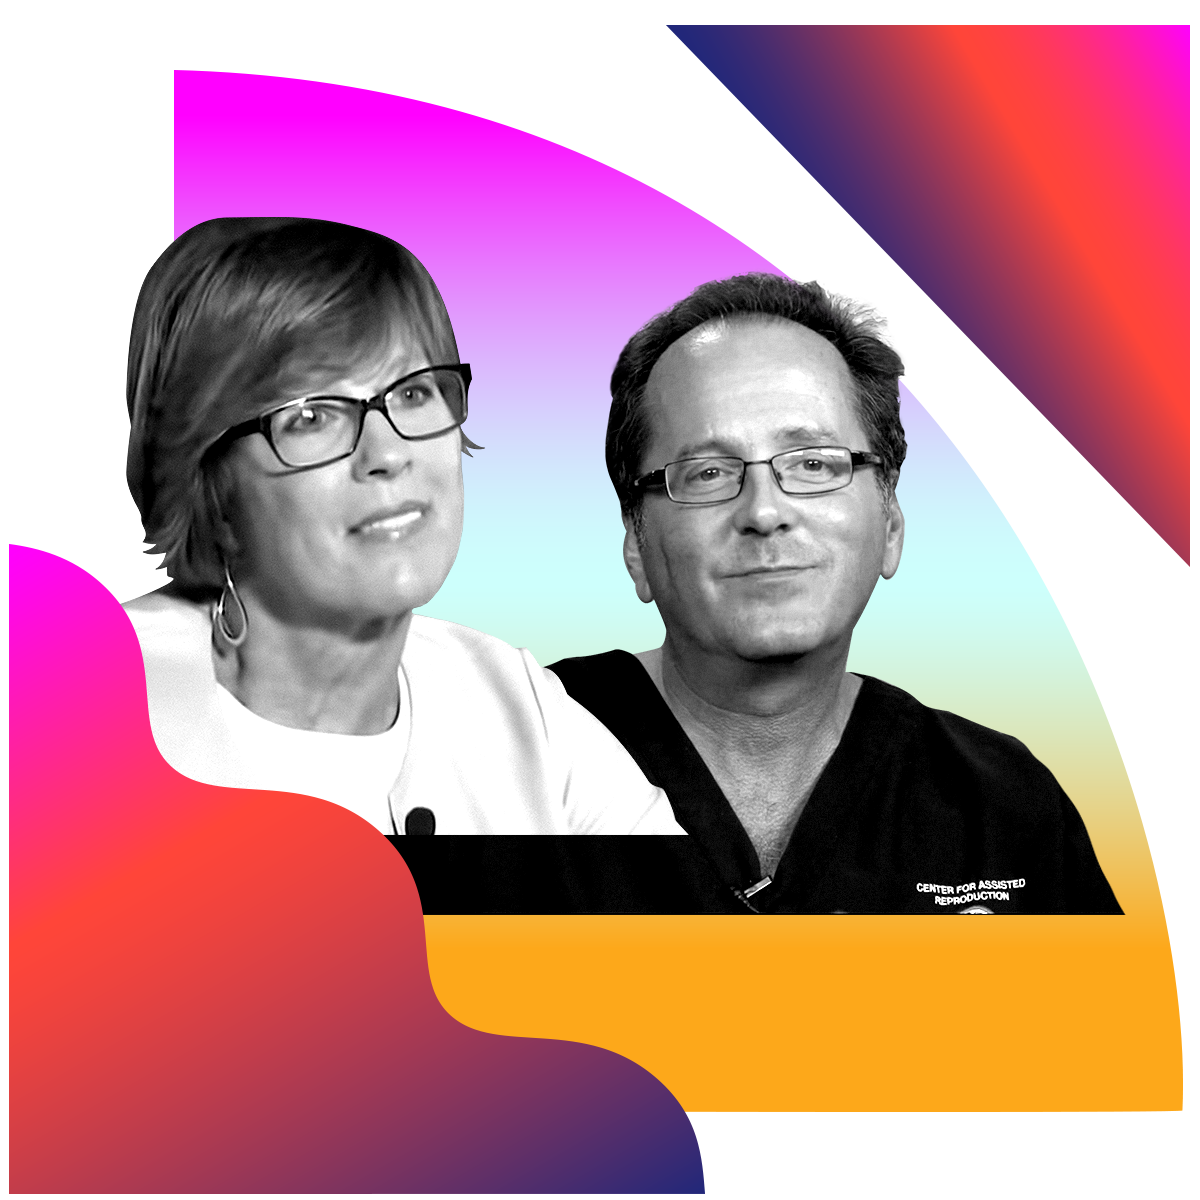 Photo illustration of Kathy and Kevin Doody in black and white surrounded by colored gradients